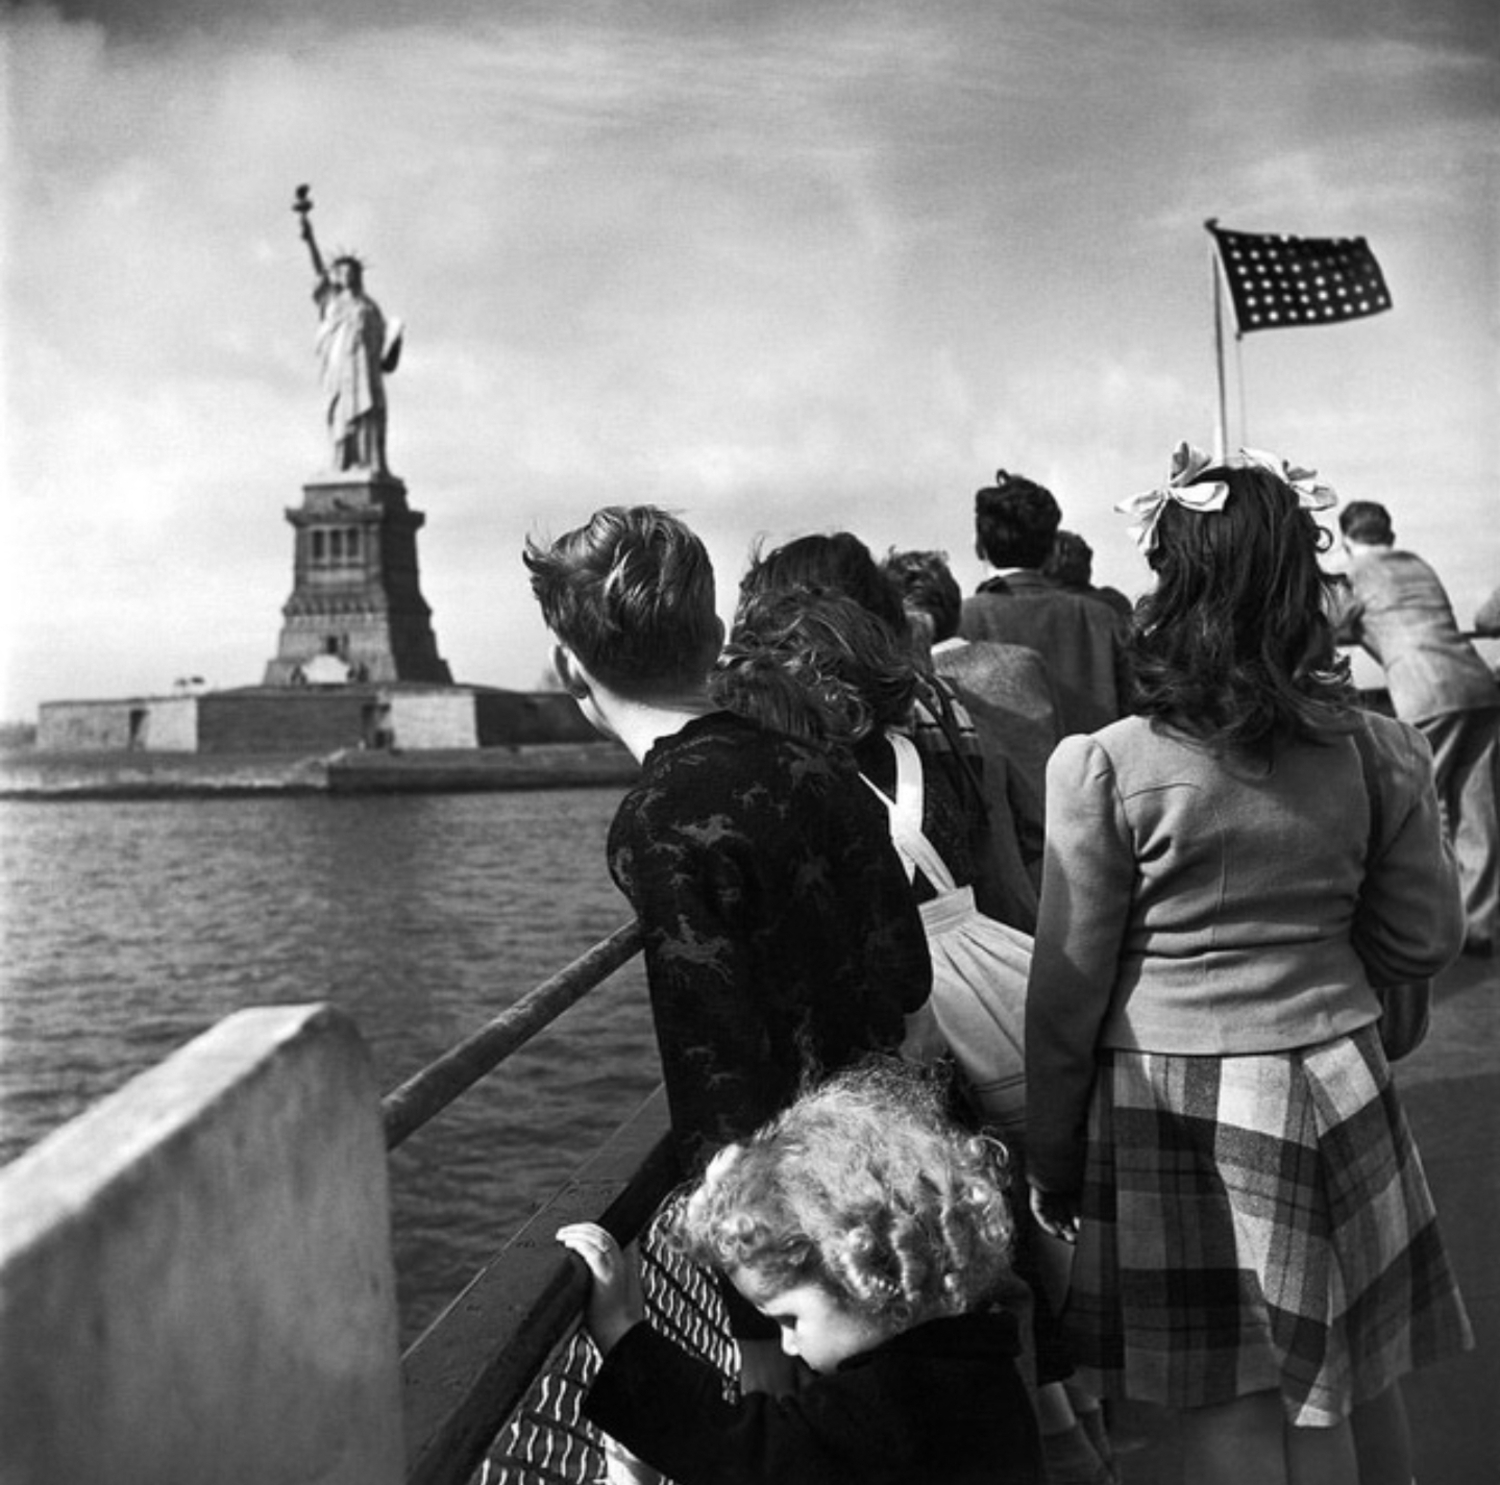 WWII refugee children viewing the Statue of Liberty as they enter the United States, 1946